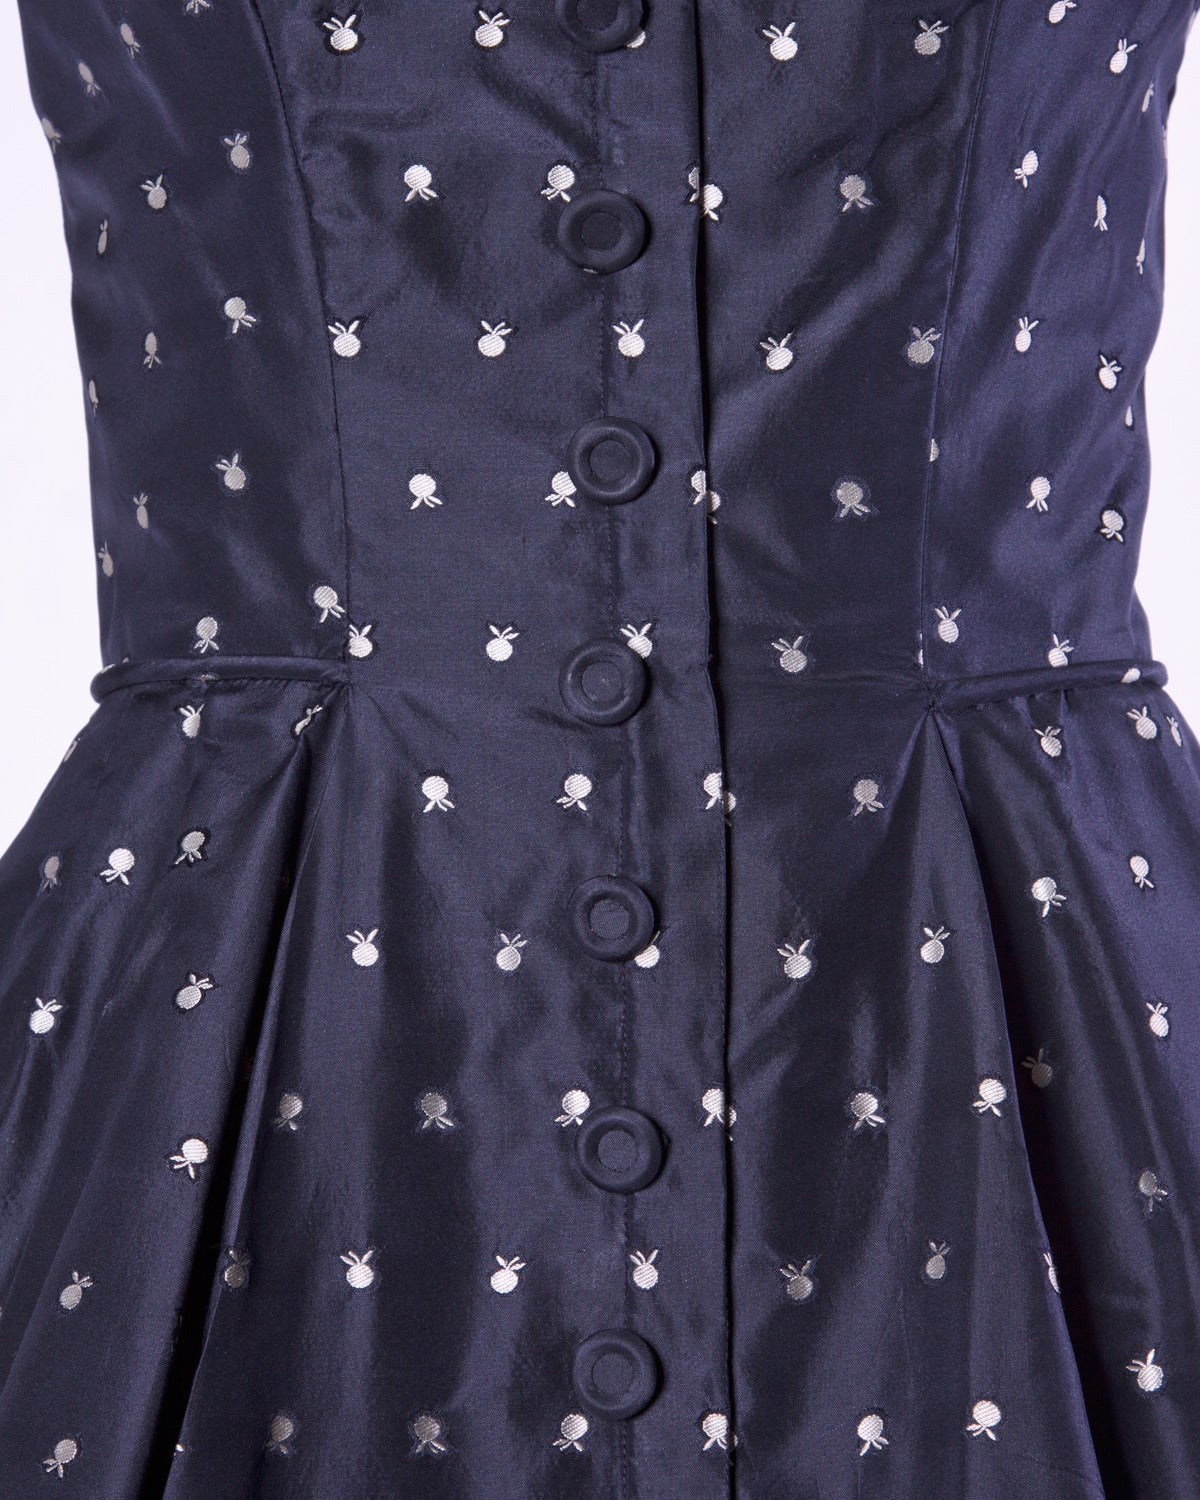 Black Ceil Chapman Vintage 1950s 50s Fruit Print Navy Silk Dress with Box Pleats For Sale